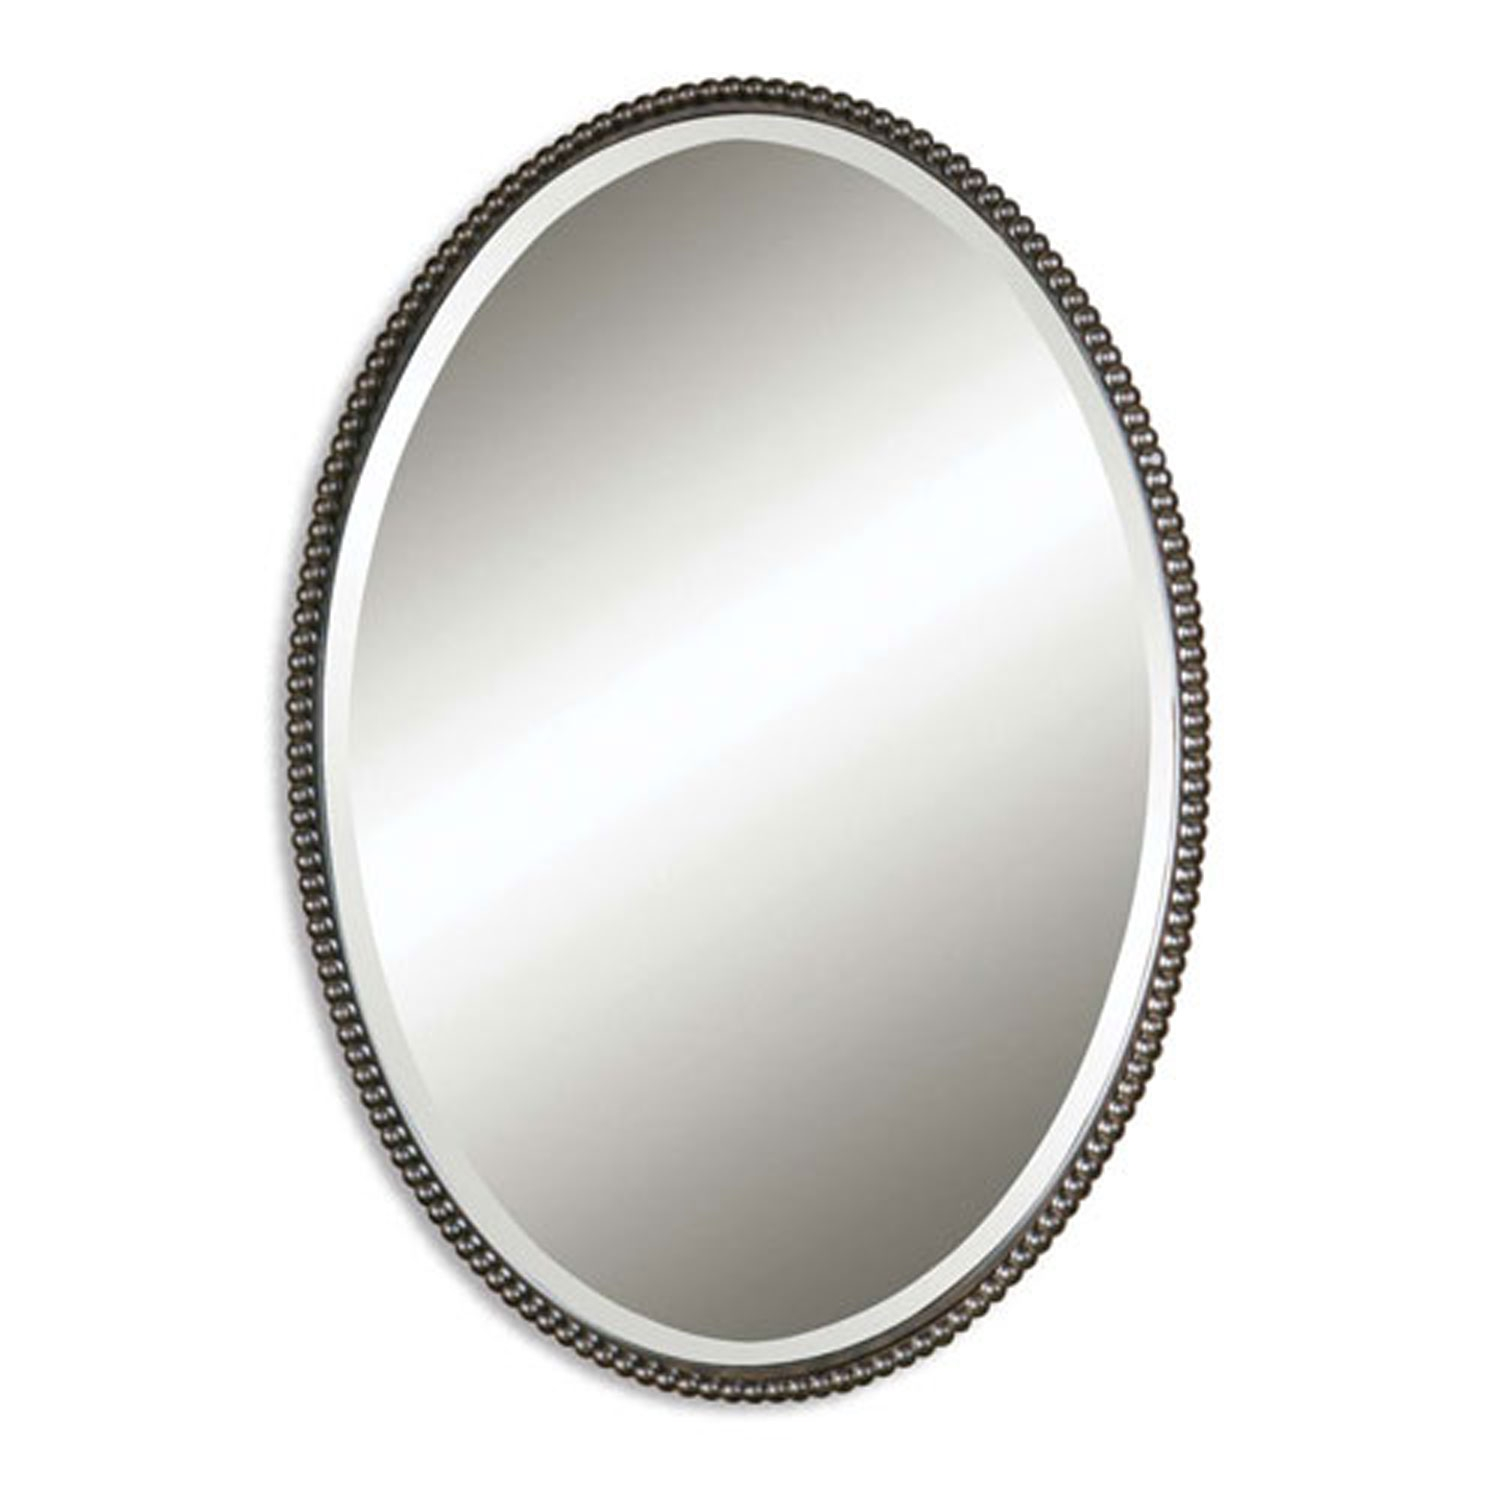 Oval Wall Mirrors 270 Kitchen Bathroom Frameless Vanity Options Pertaining To Long Oval Mirror (Image 13 of 15)